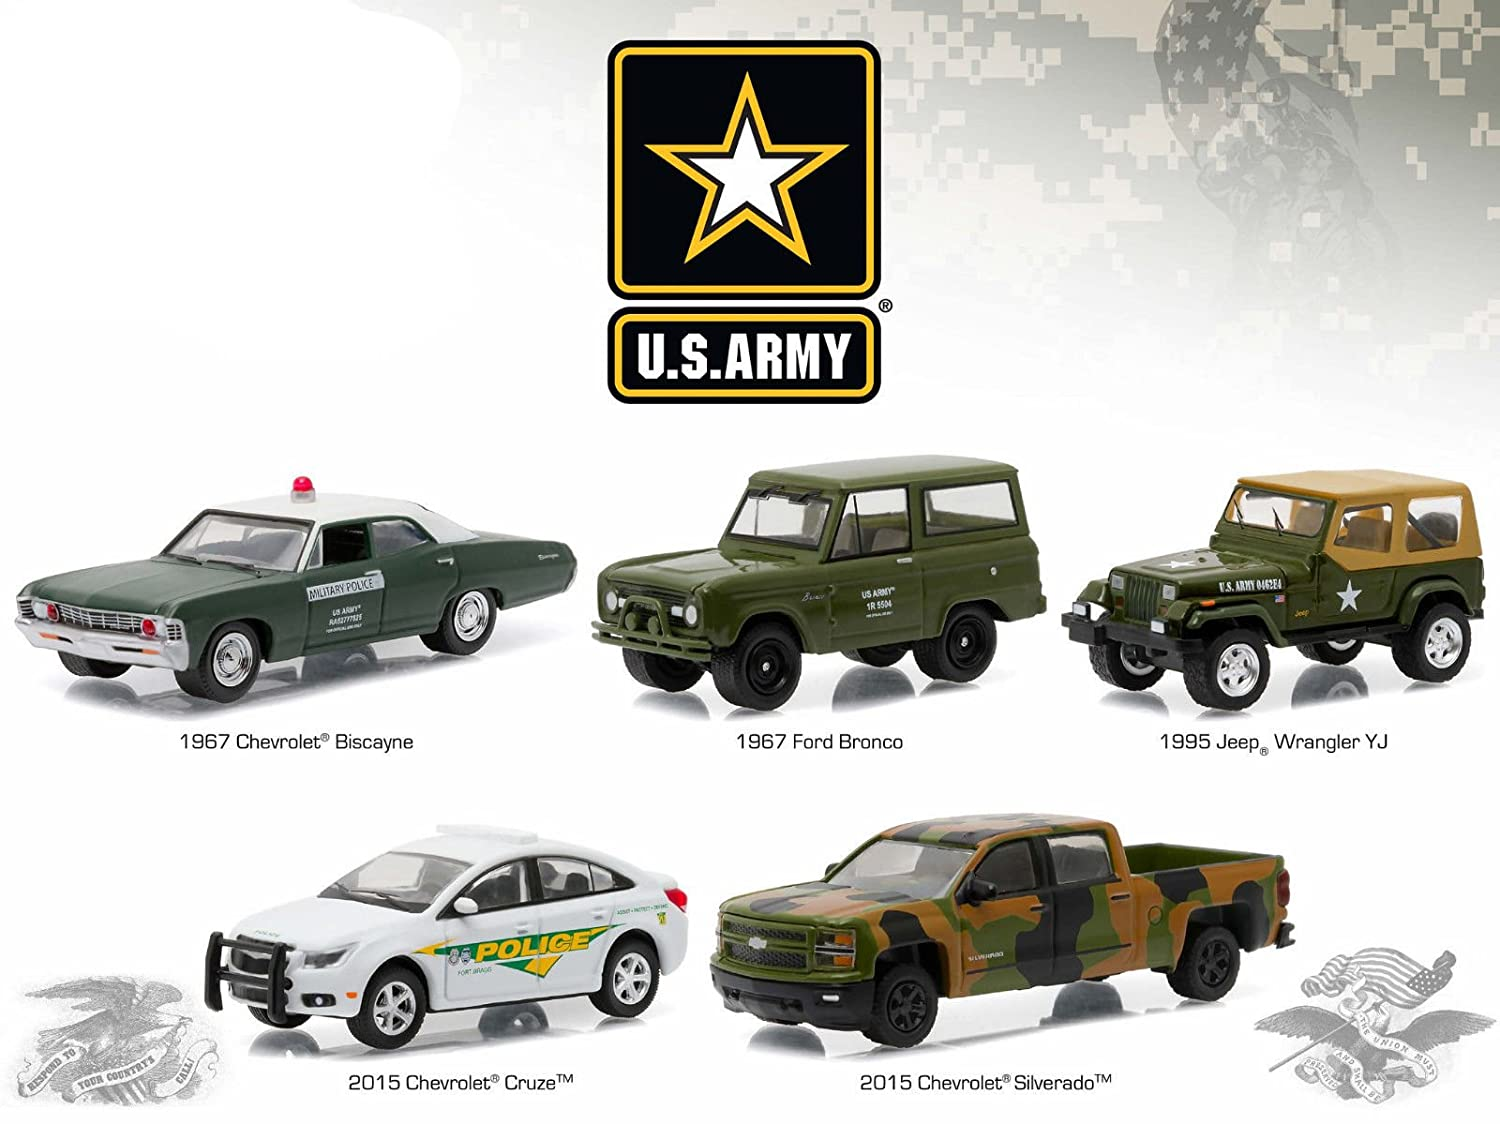 US Army Base 5 Cars Motor World Diorama Set 1/64 by Greenlight 58028 by Greenlight